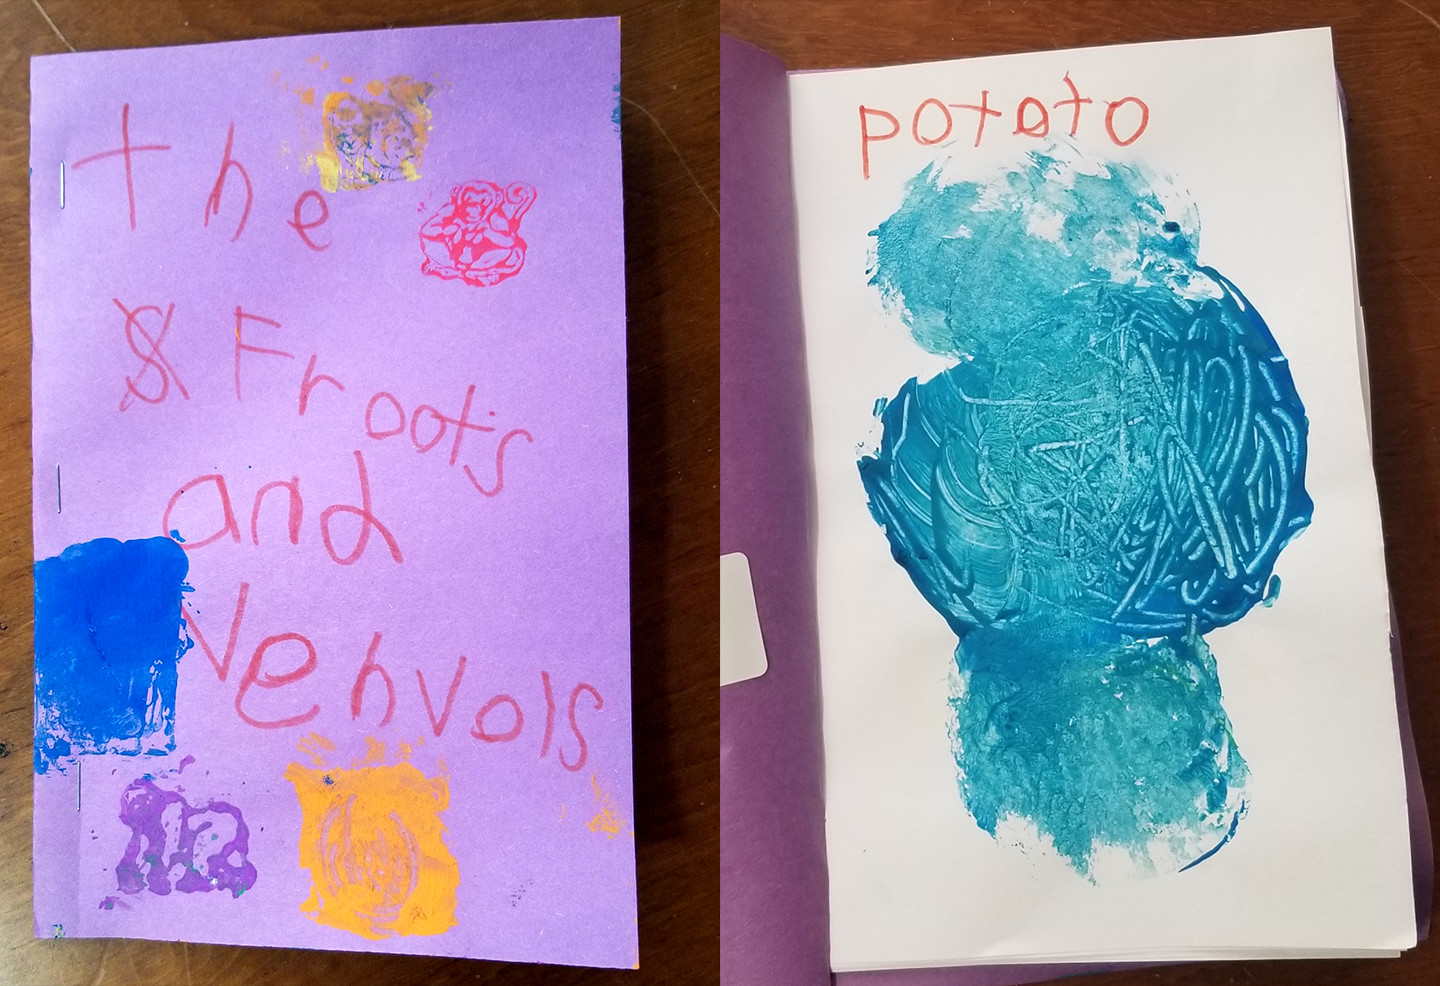 cover page handwritten by a child; interior page is filled with blue paint